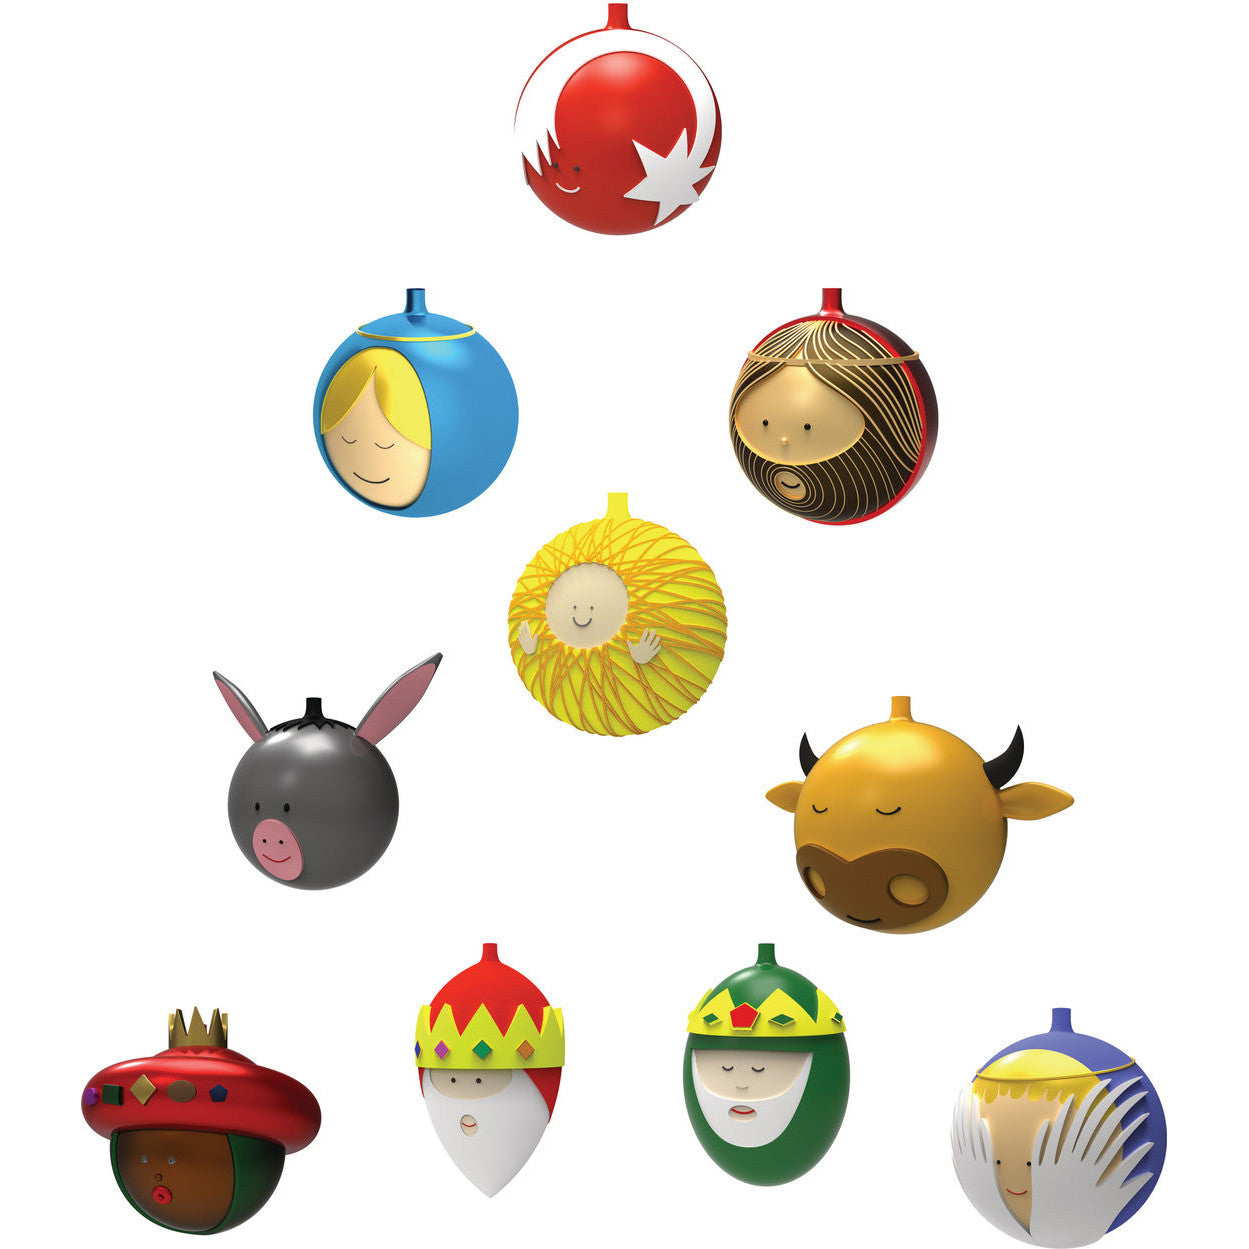 le palle presepe small christmas ornaments by alessi set of 10 - Small Christmas Ornaments